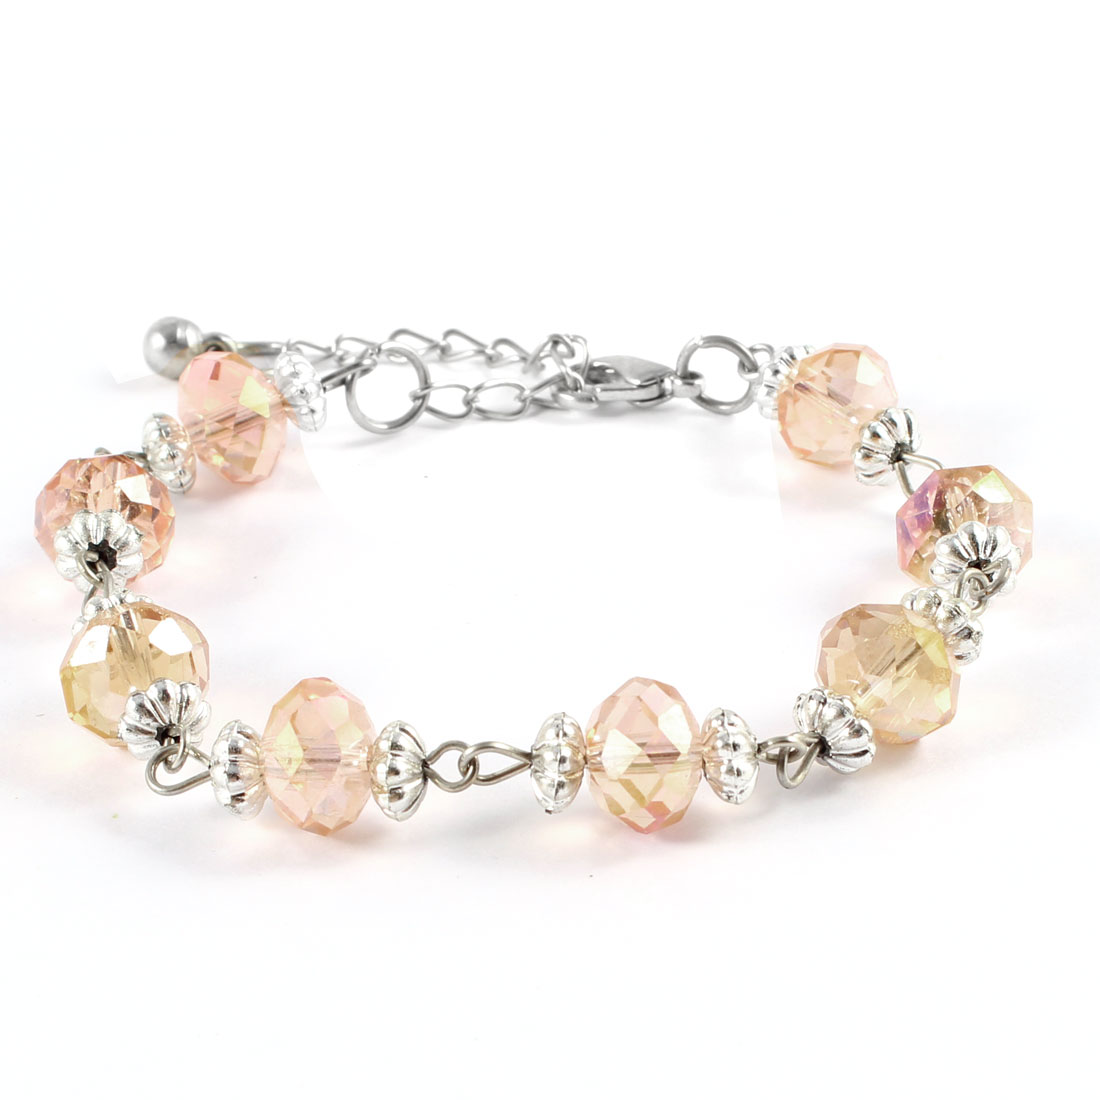 Beige Faceted Faux Crystal Beaded Metal Chain Wrist Bracelet for Lady